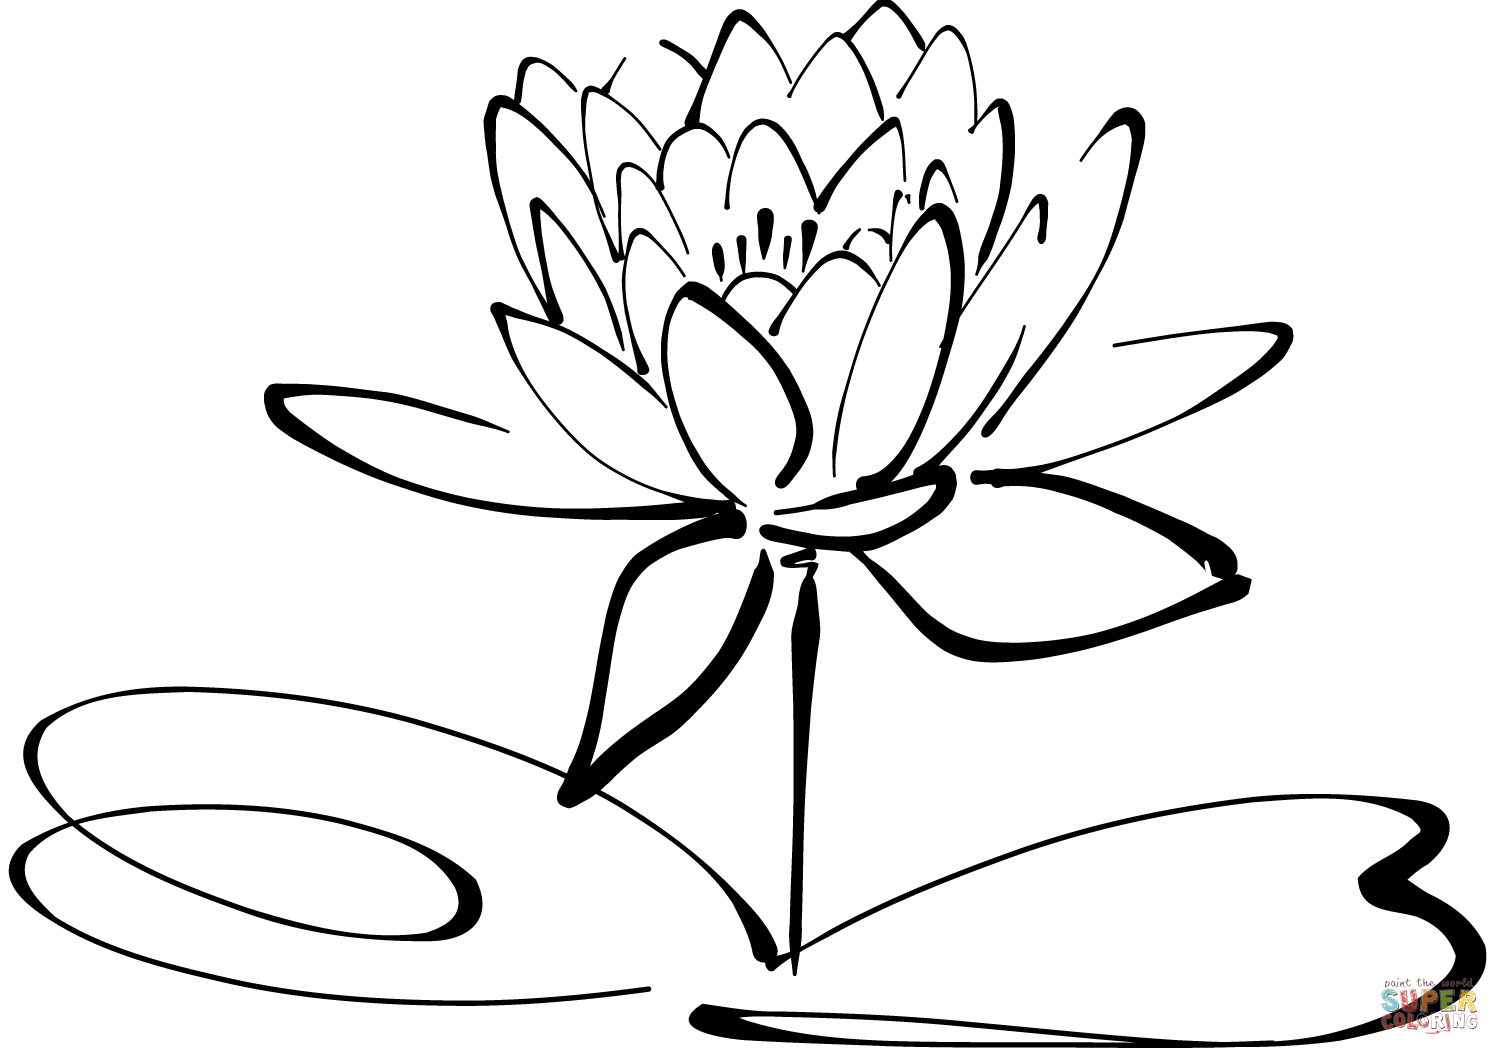 Water Lily Flower Drawing at GetDrawings | Free download